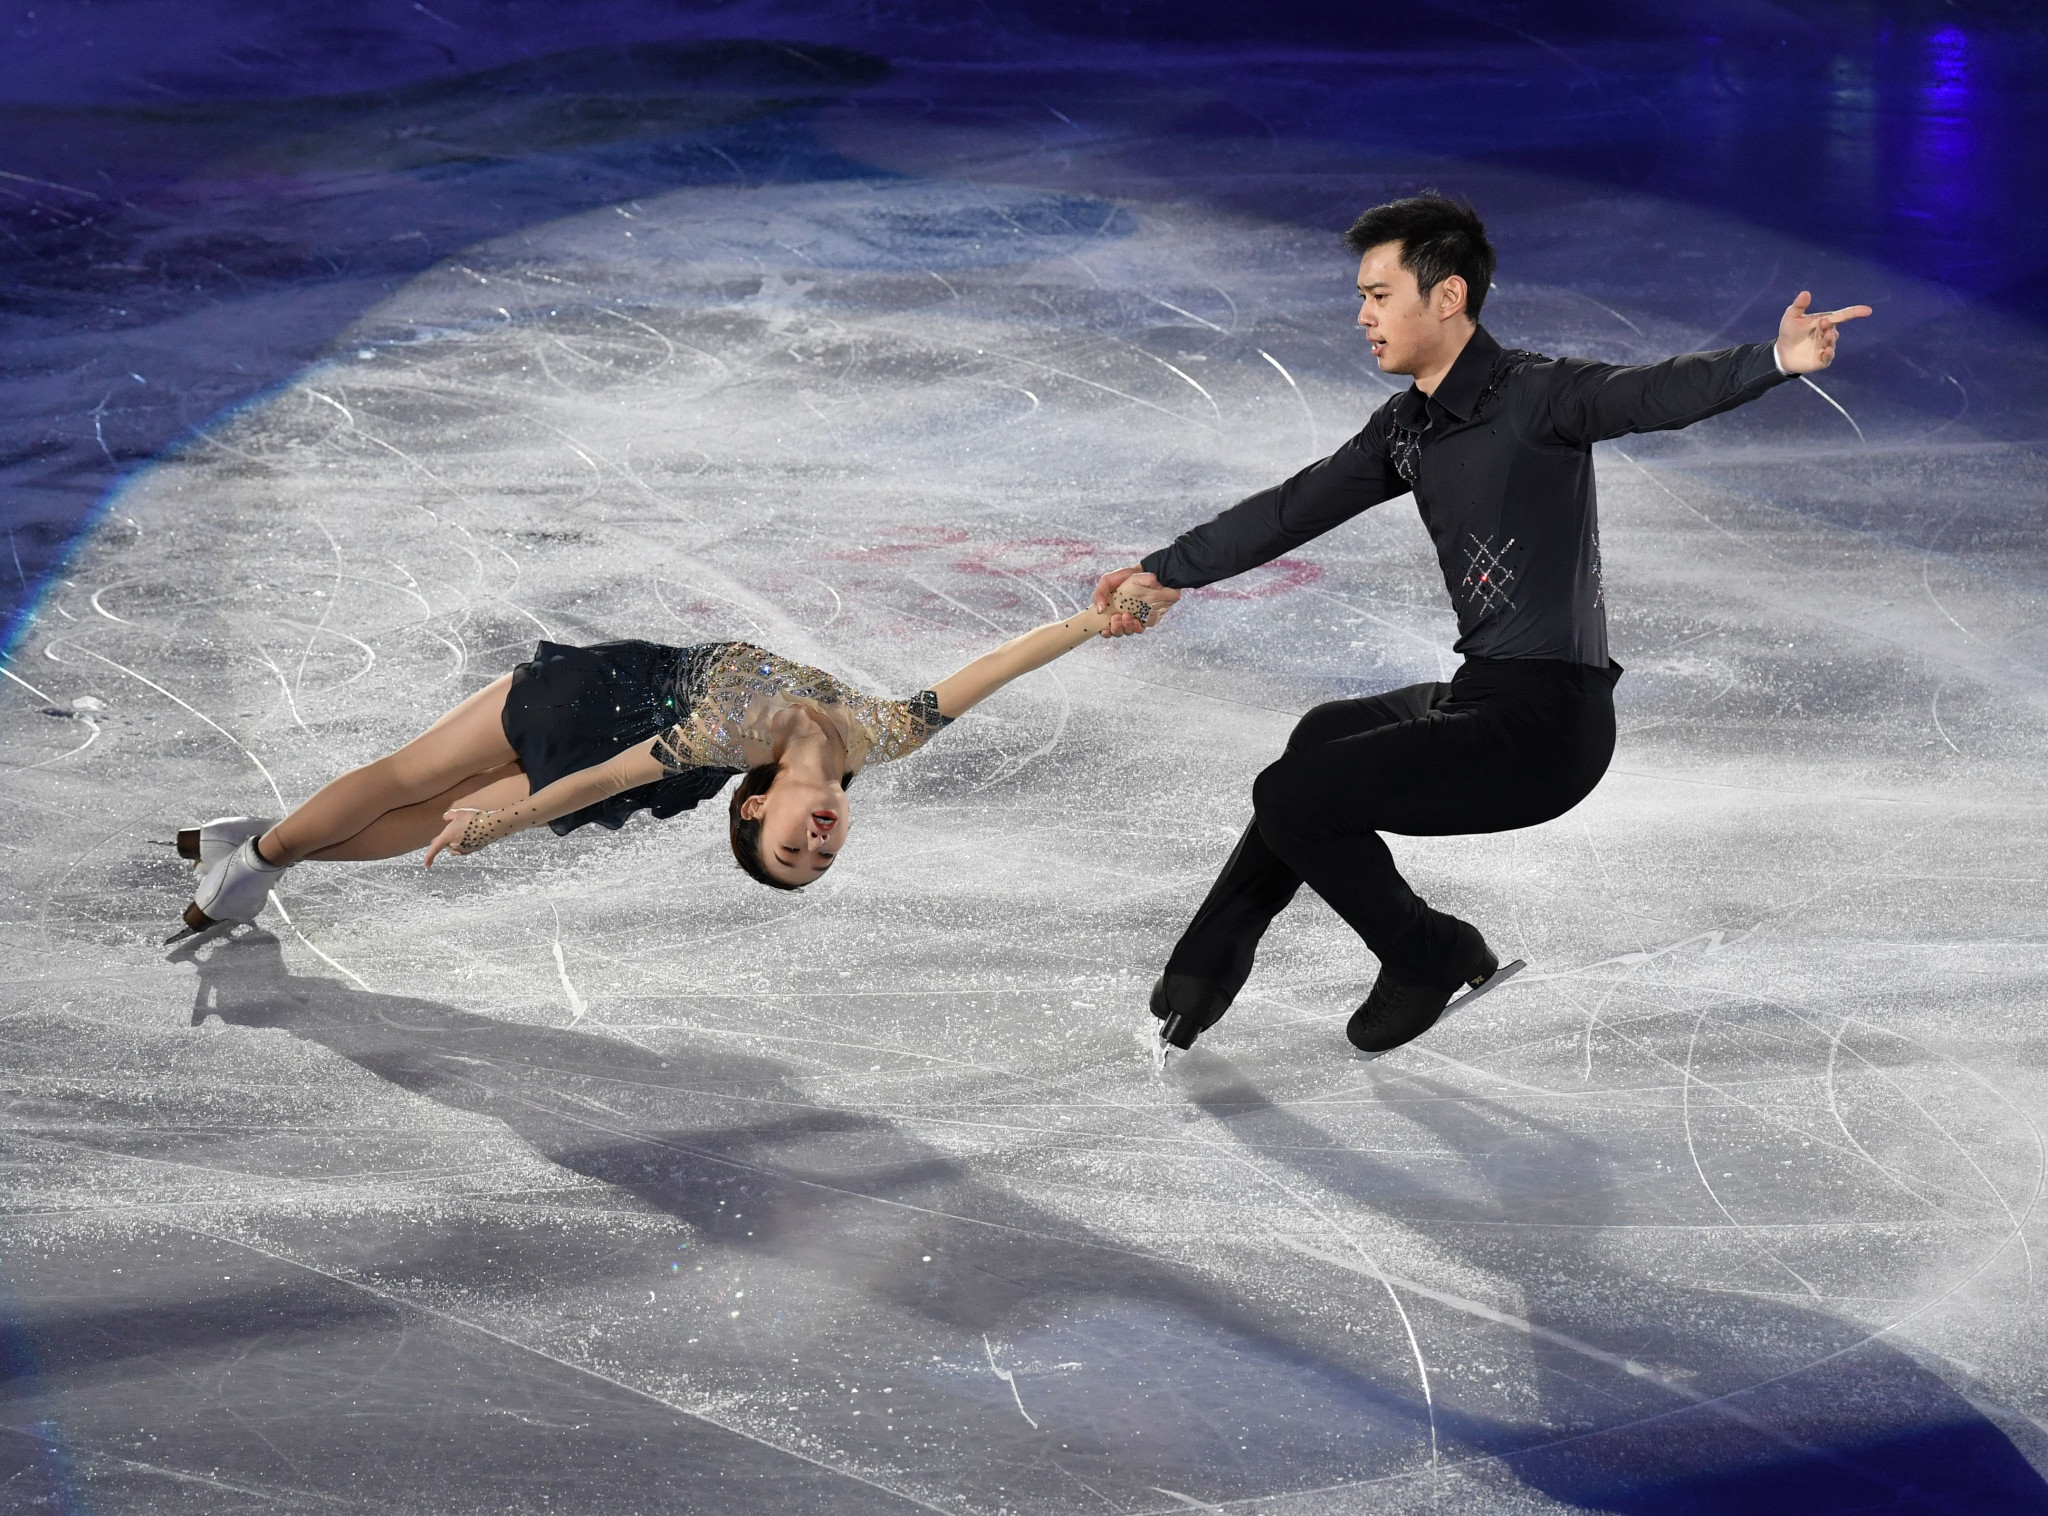 The International Skating Union has suspended the introduction of new figure skating judging guidelines due to the coronavirus pandemic ©Getty Images